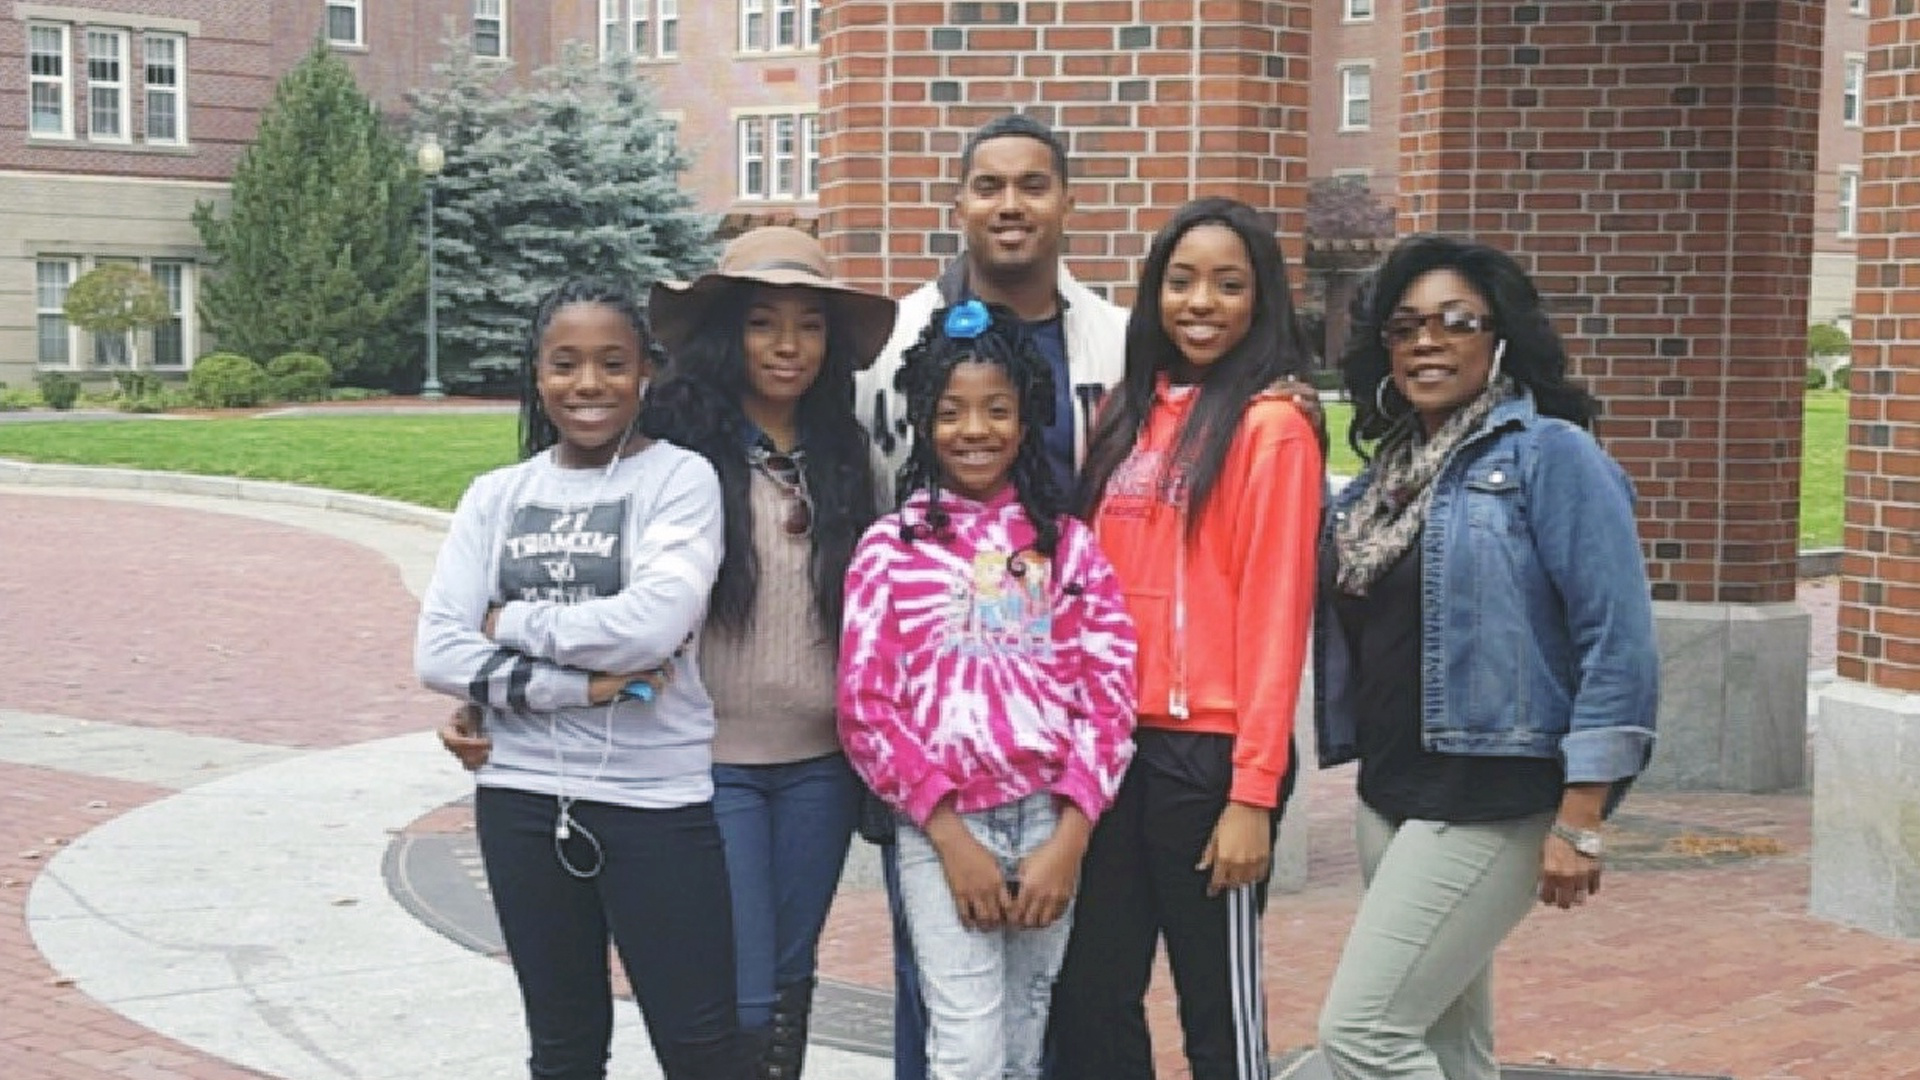 Corbin Family:  (L-R) Kimberly, Shawn, Sloane, Sydney, Samantha, and Terrance in back.